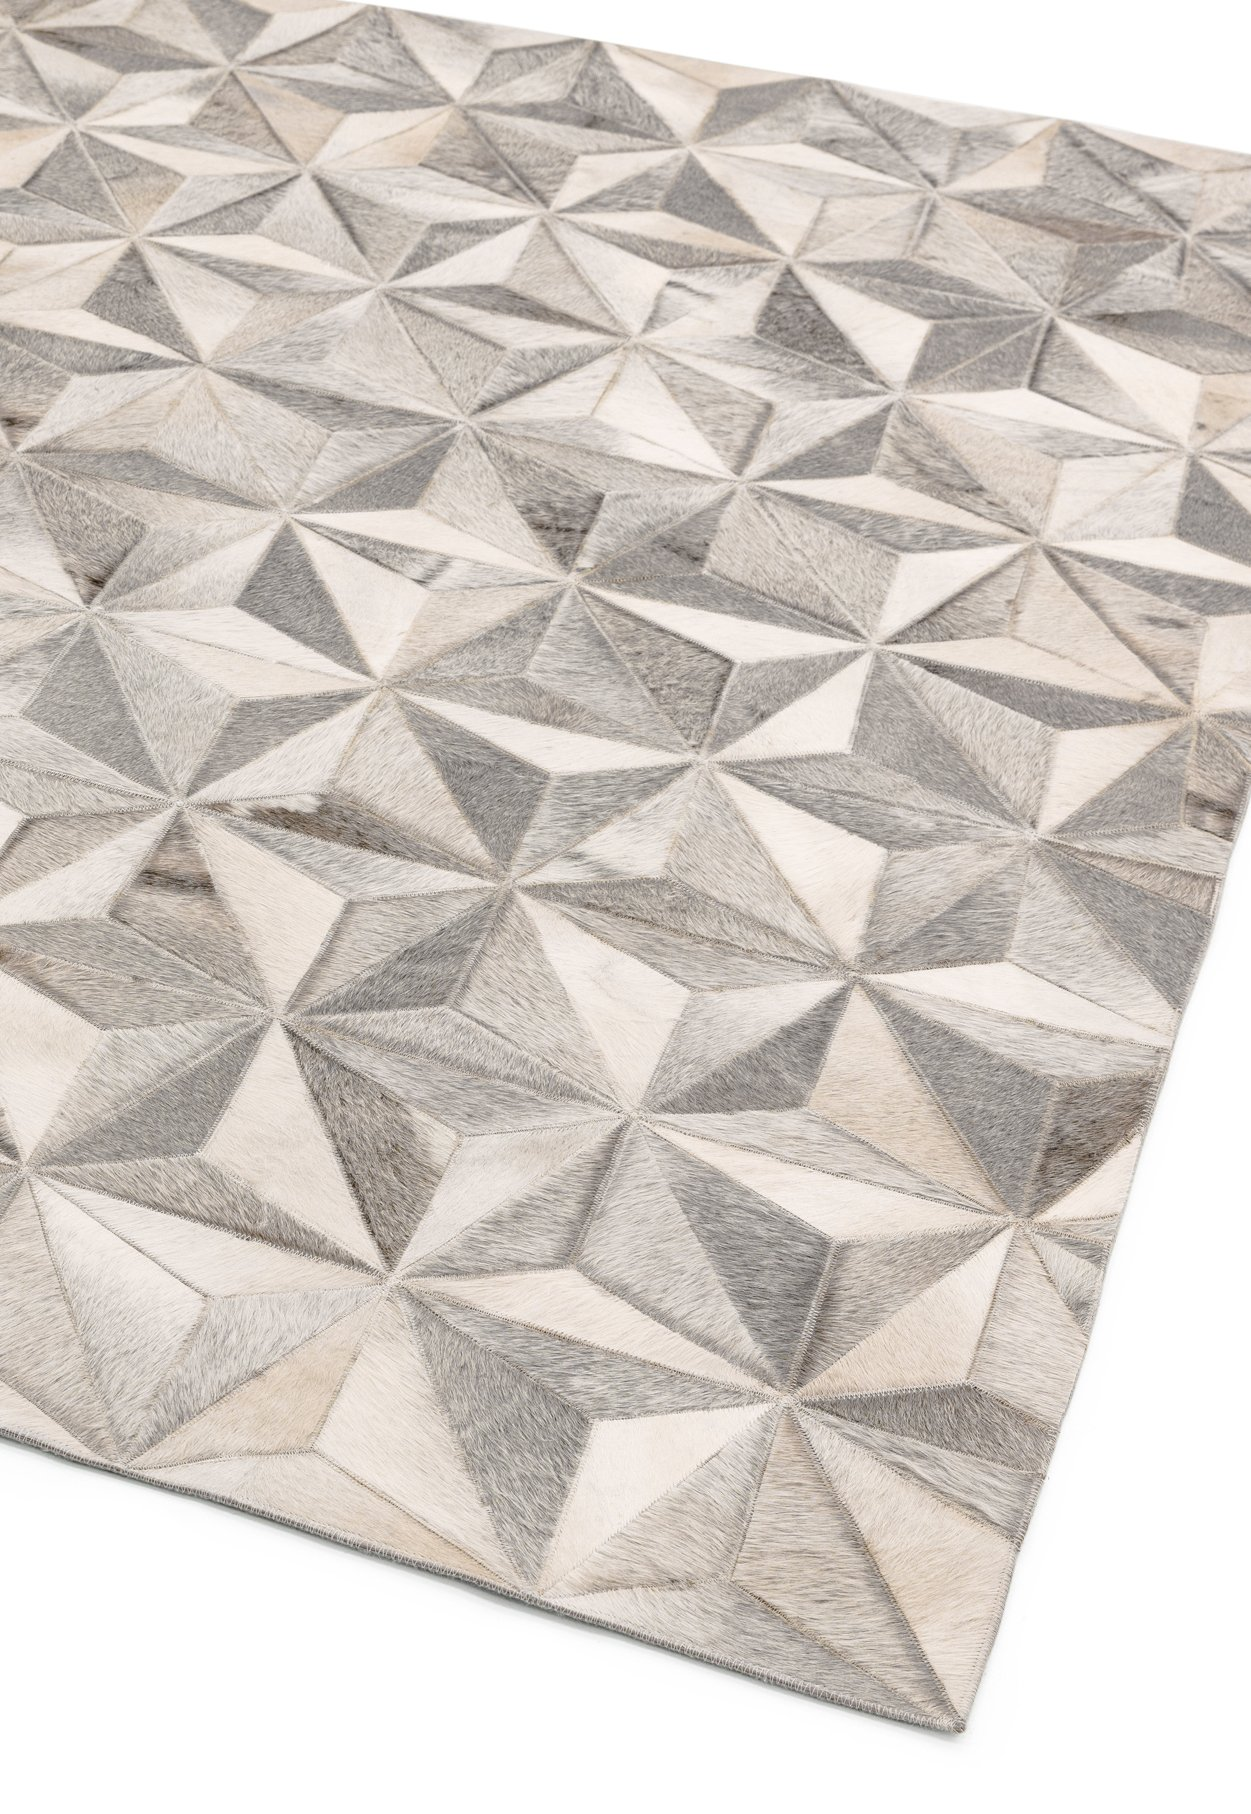 Gaucho Rug Facet Grey